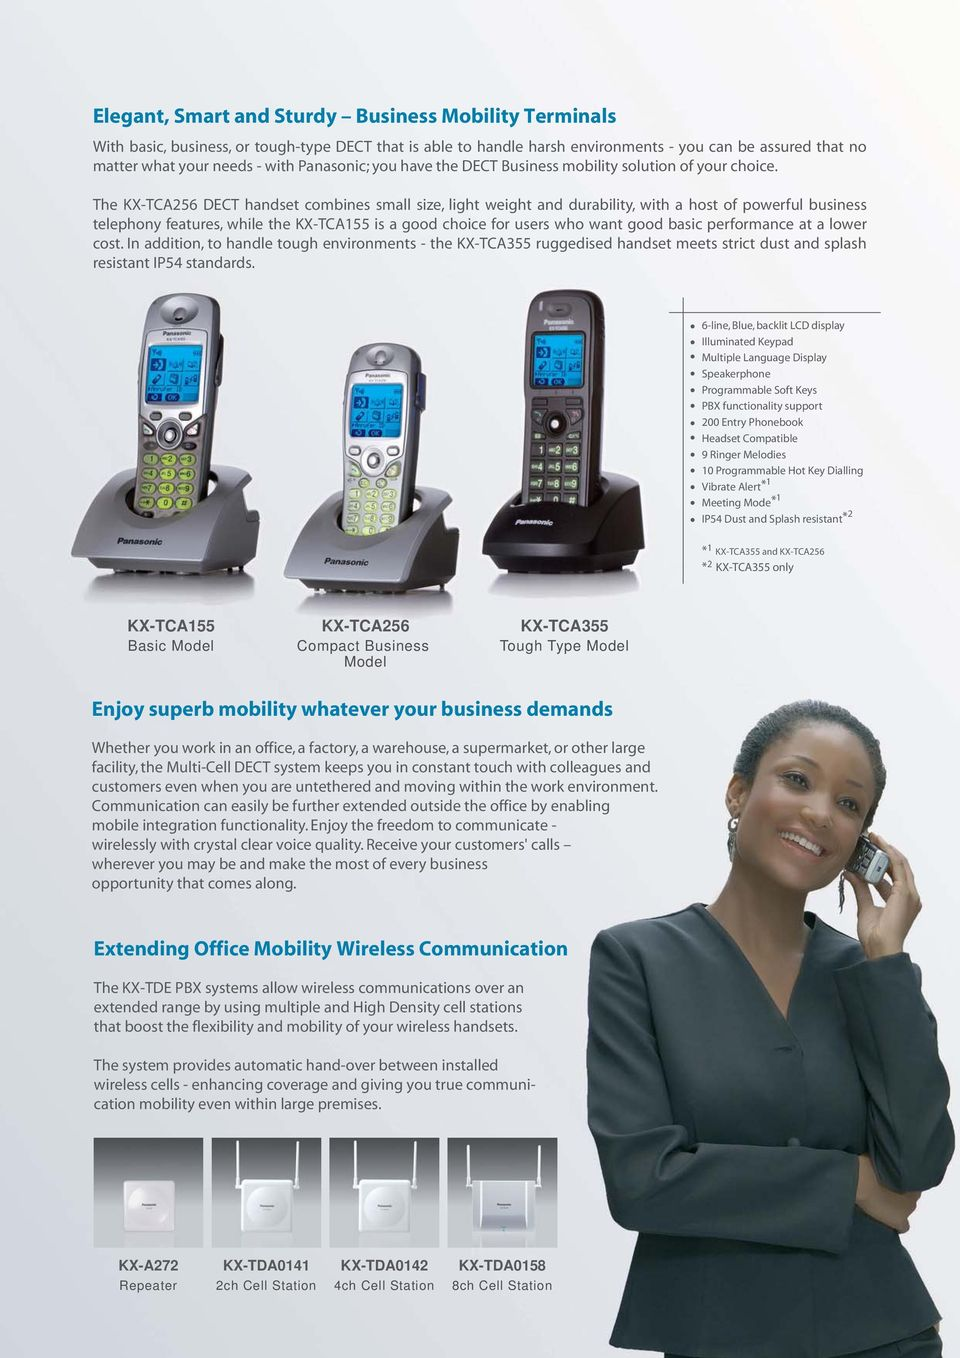 The KX-TCA256 DECT handset combines small size, light weight and durability, with a host of powerful business telephony features, while the KX-TCA155 is a good choice for users who want good basic